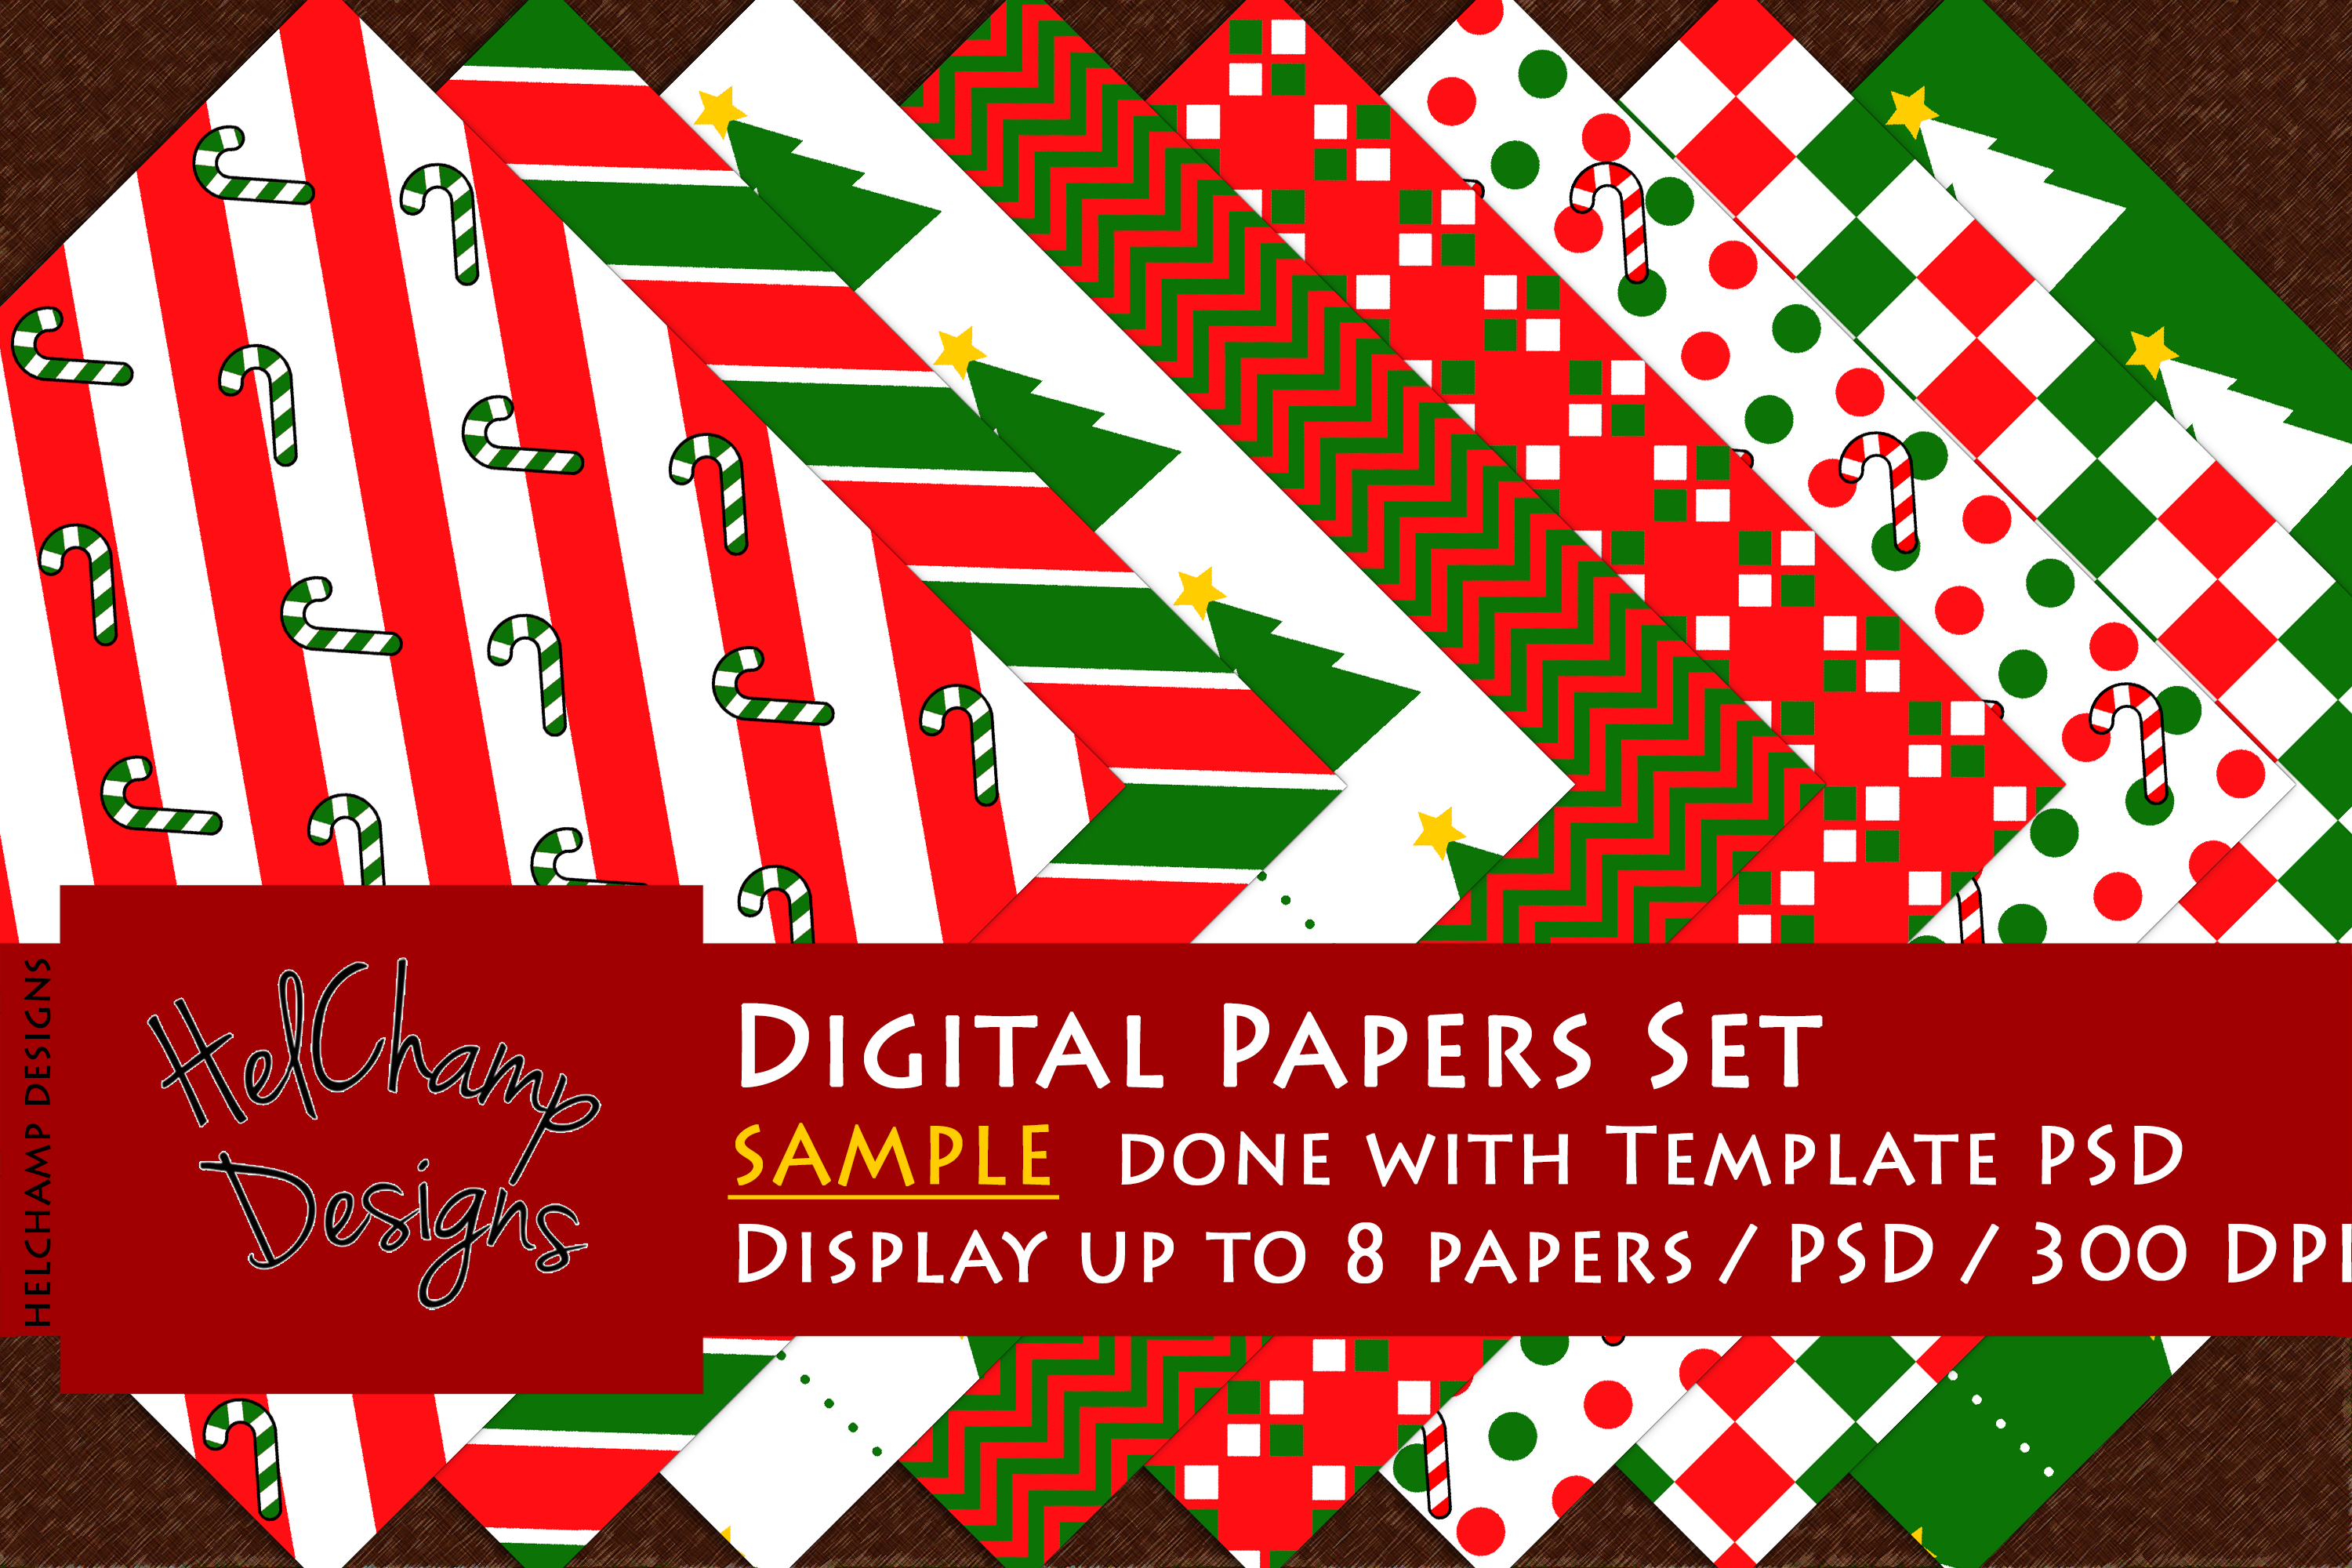 1 to 8 Panels Mockup for Digital Papers - M03 example image 5